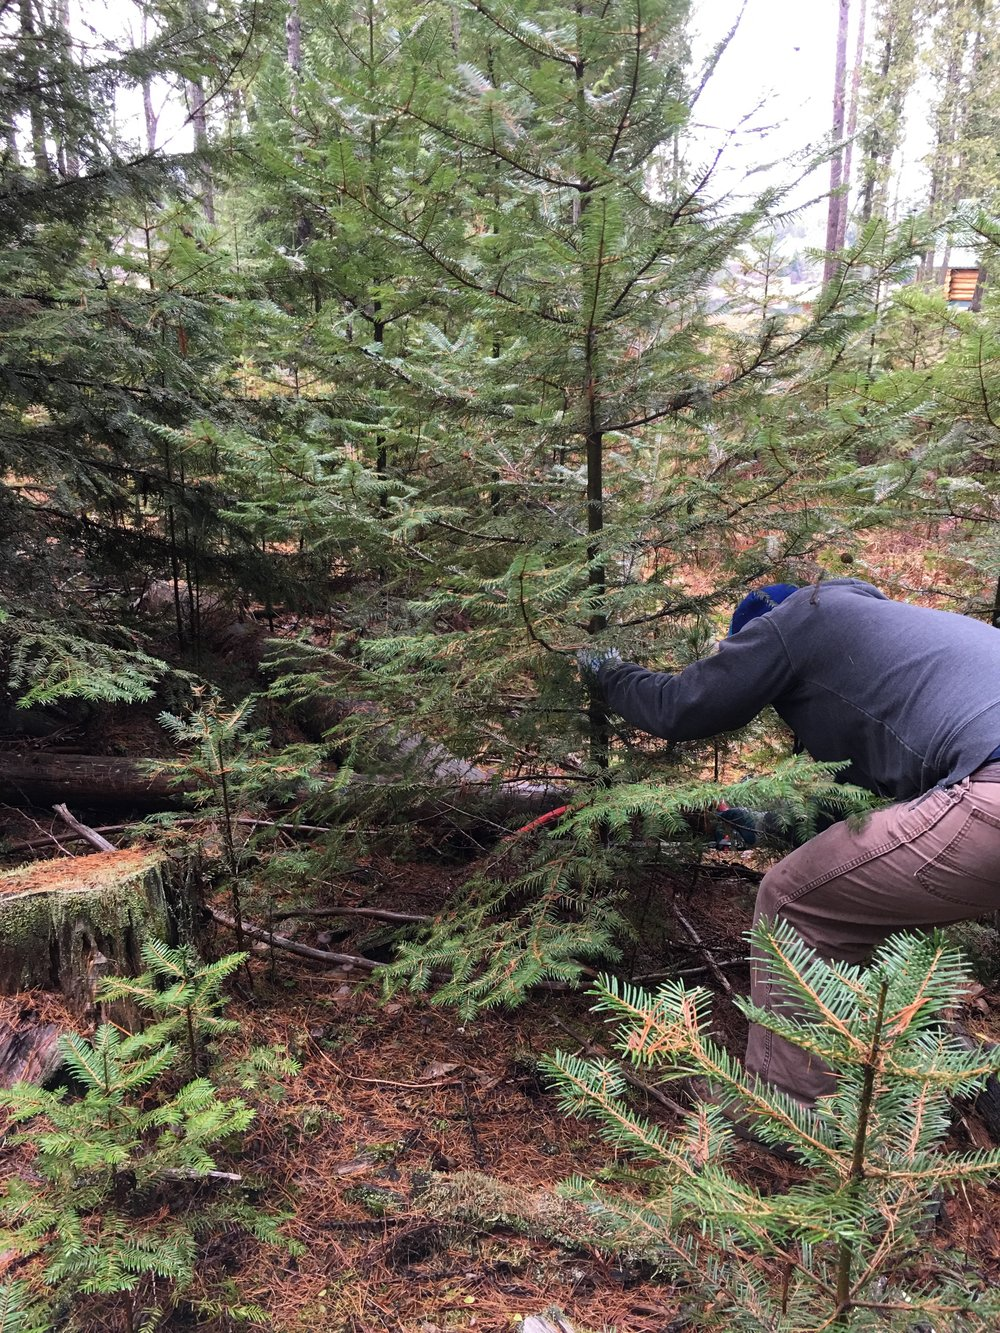 Paul cutting the Christmas tree.